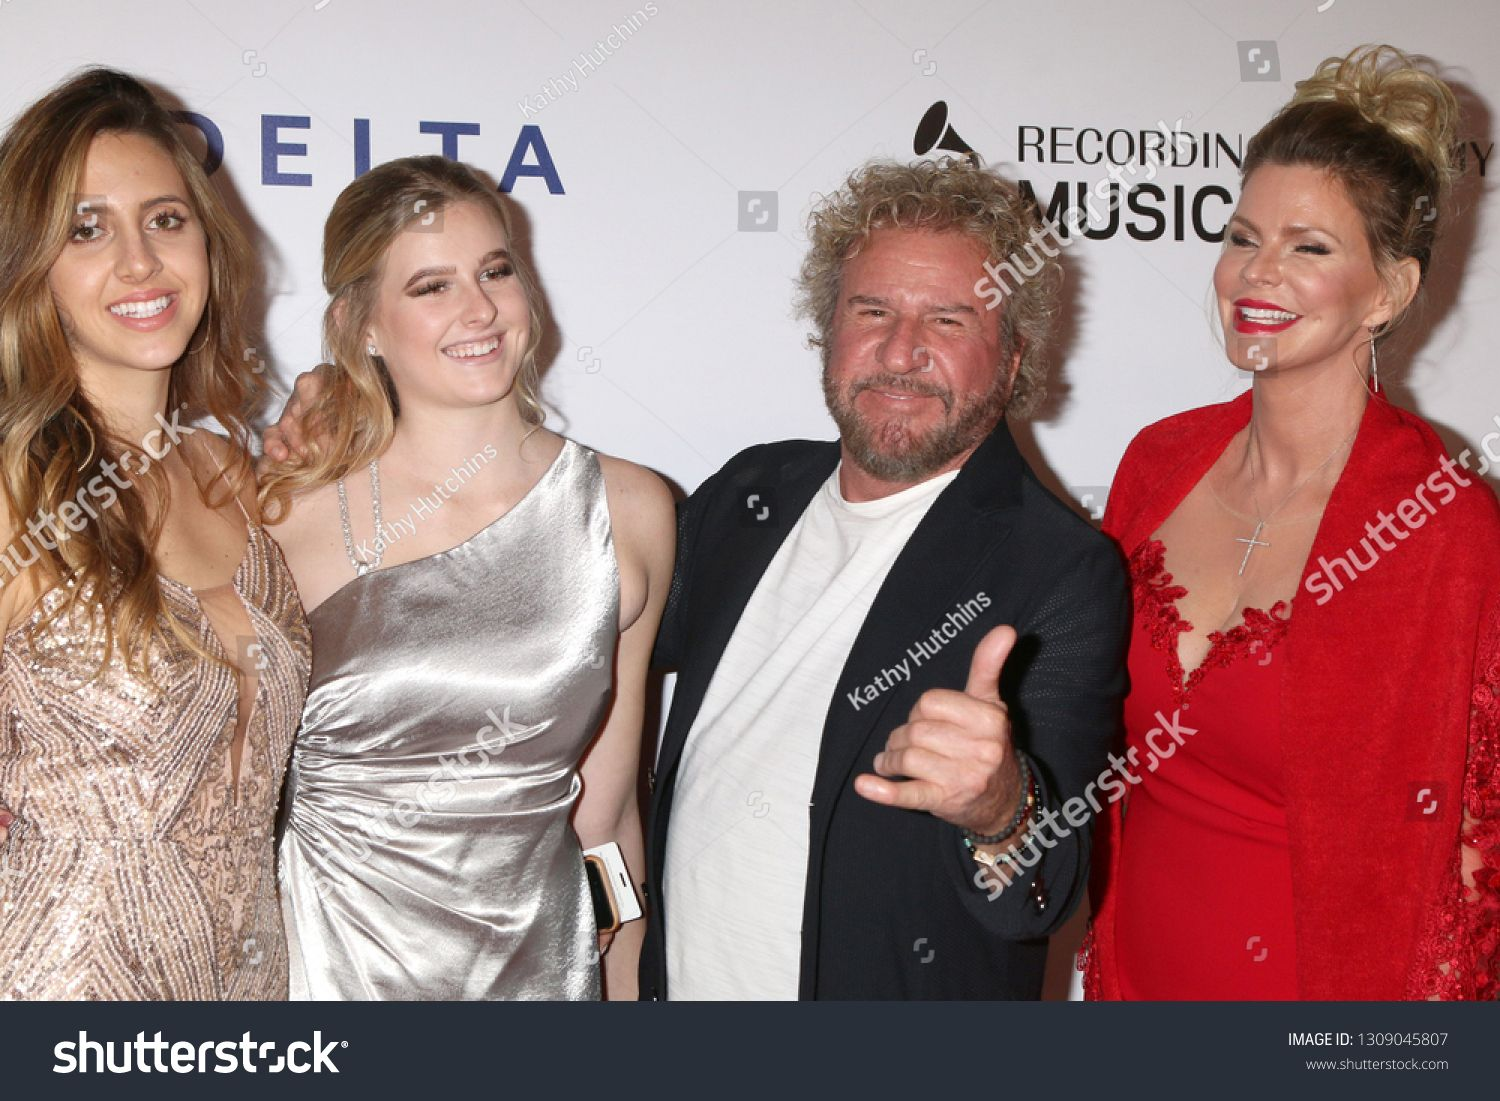 Los Angeles Feb 8 Samantha Hagar Kama Hagar Sammy Hagar Kari Karte At The Musicares Person Of The Ye Photo Editing Stock Photos Royalty Free Stock Photos